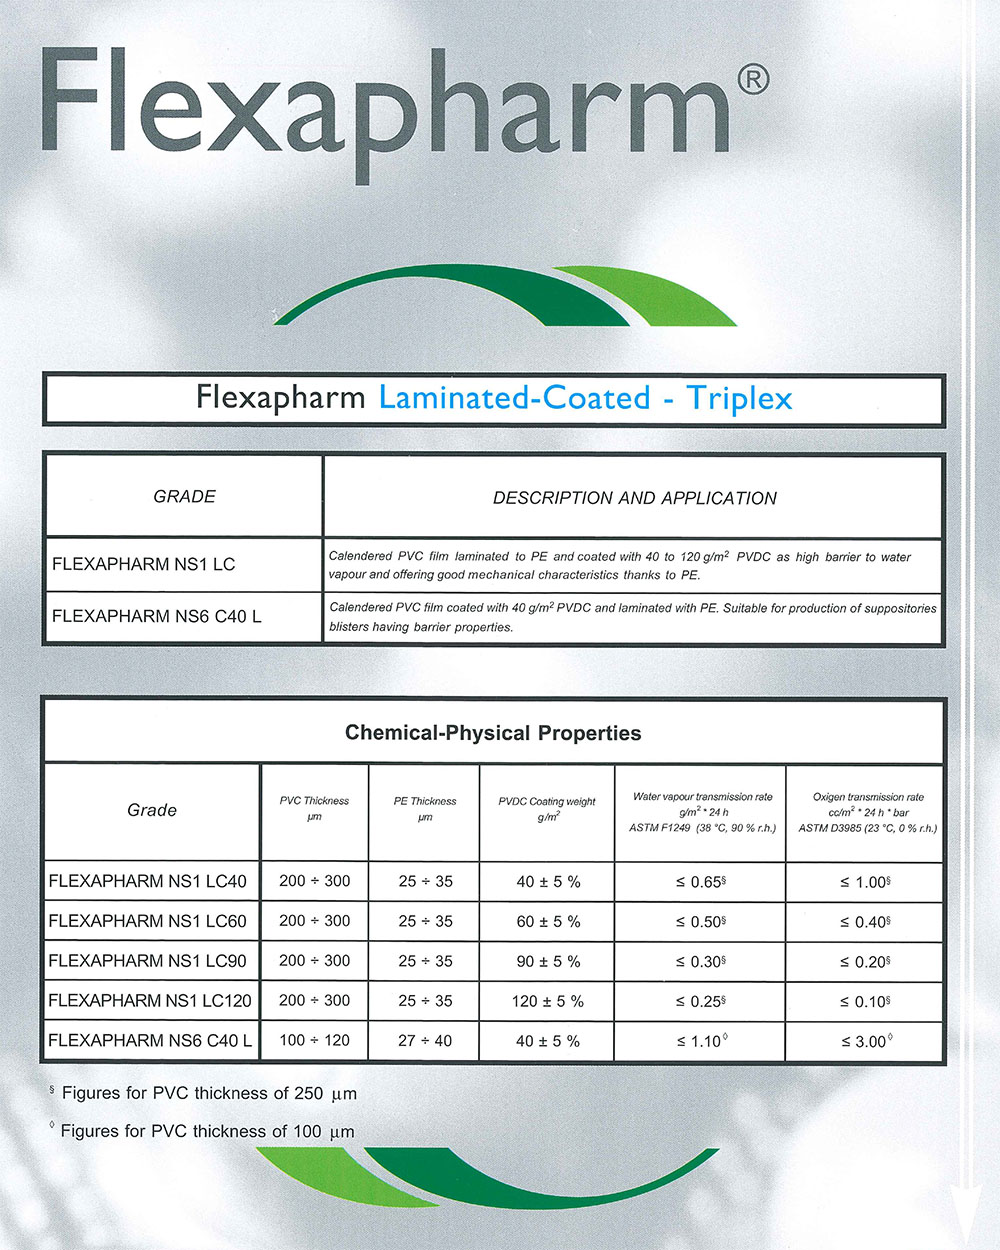 FLEXAPHARM LAMINATED COATED TRIPLEX 2